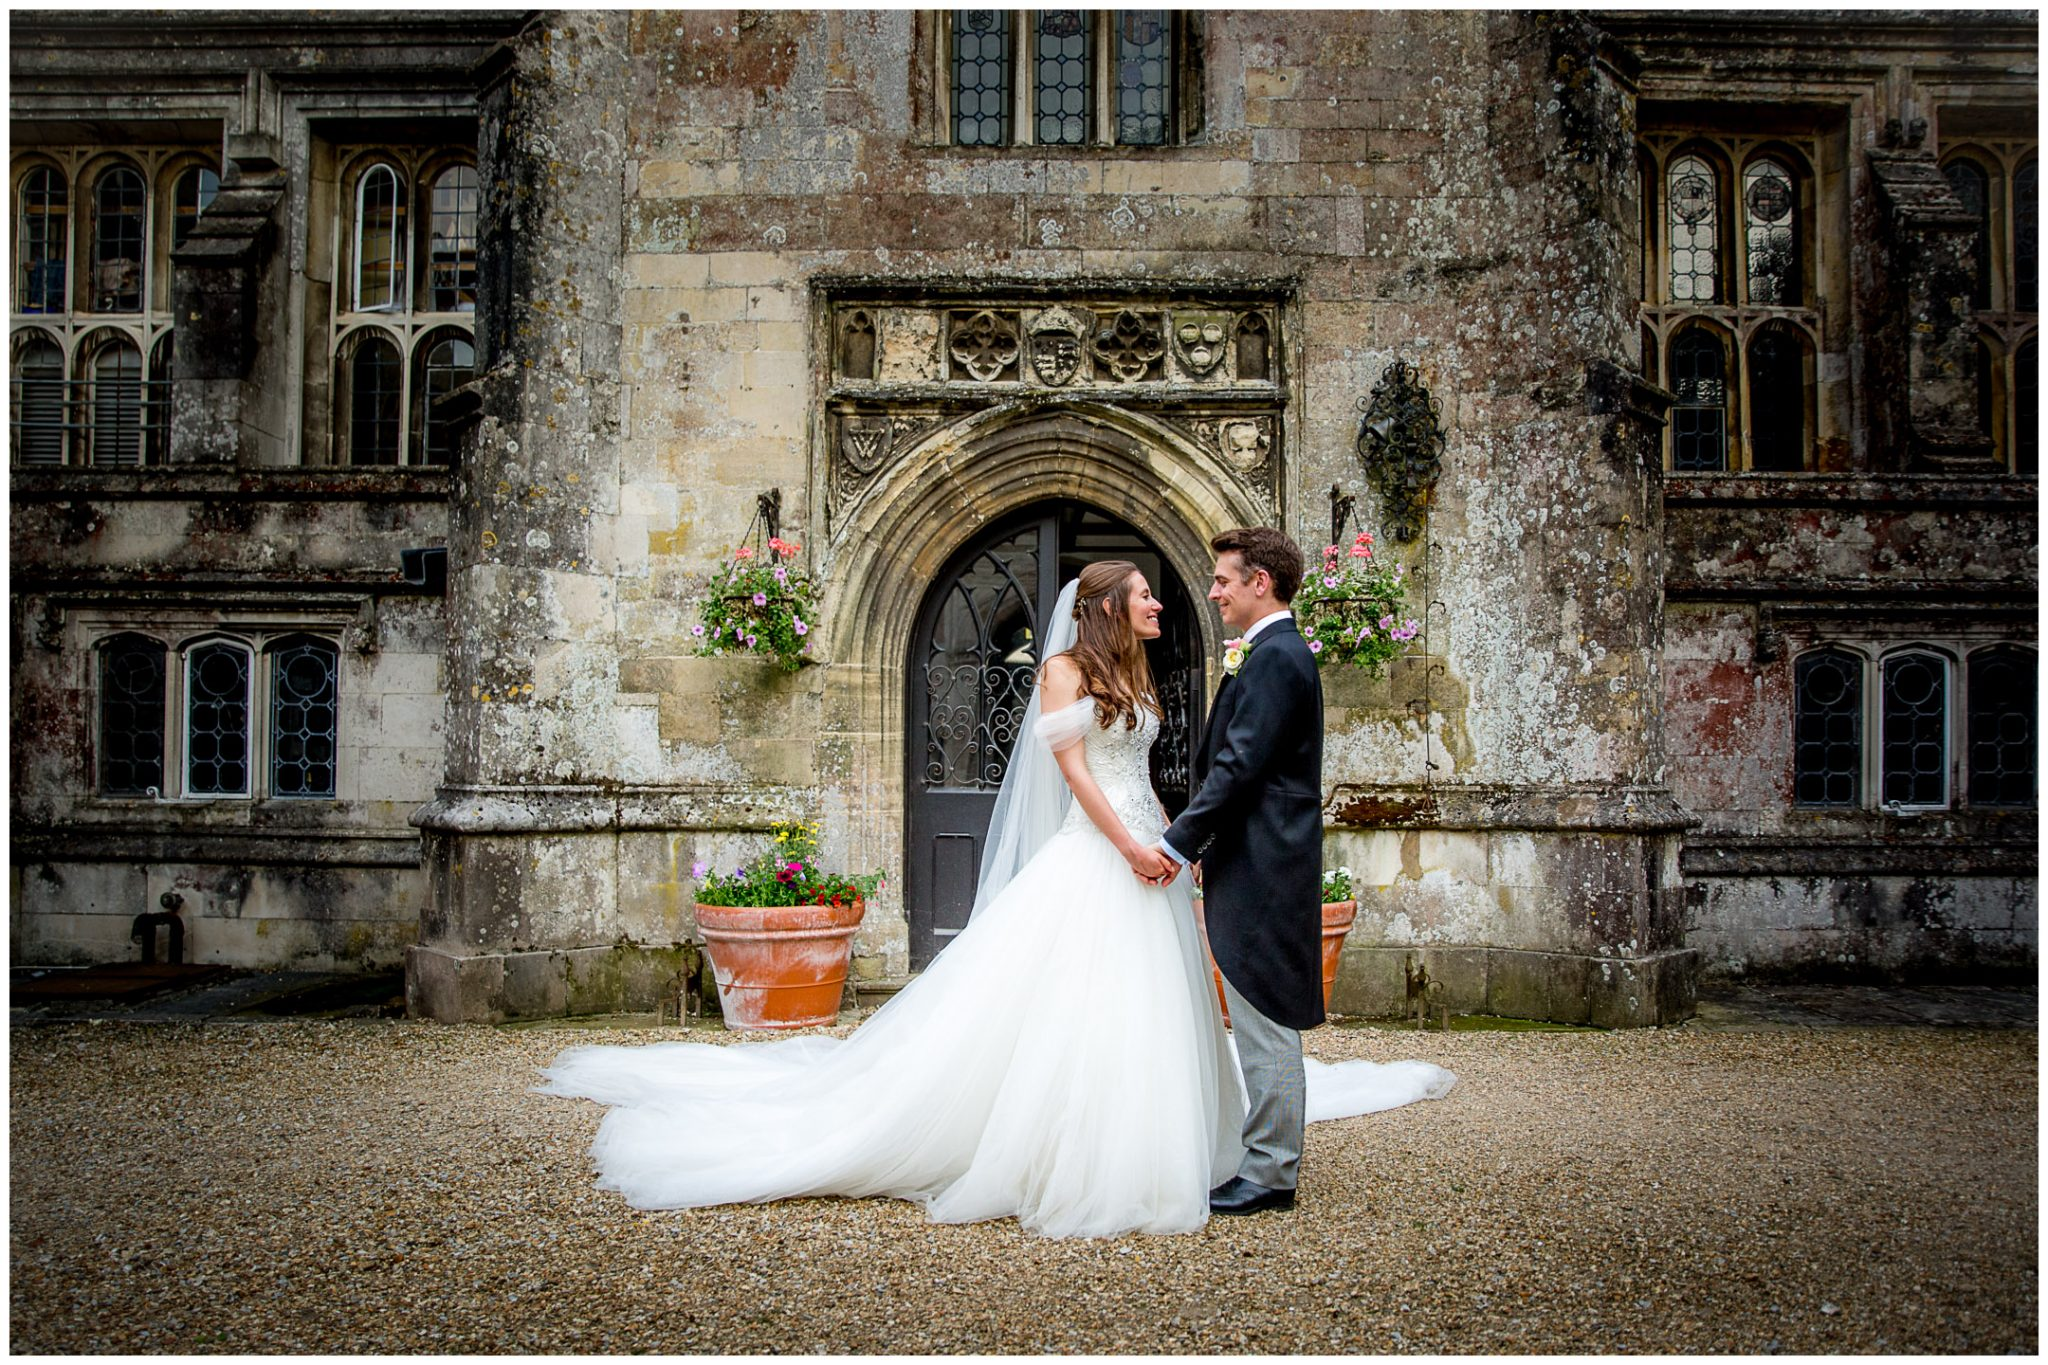 Couple portraits in the Quad at Milton Abbey School